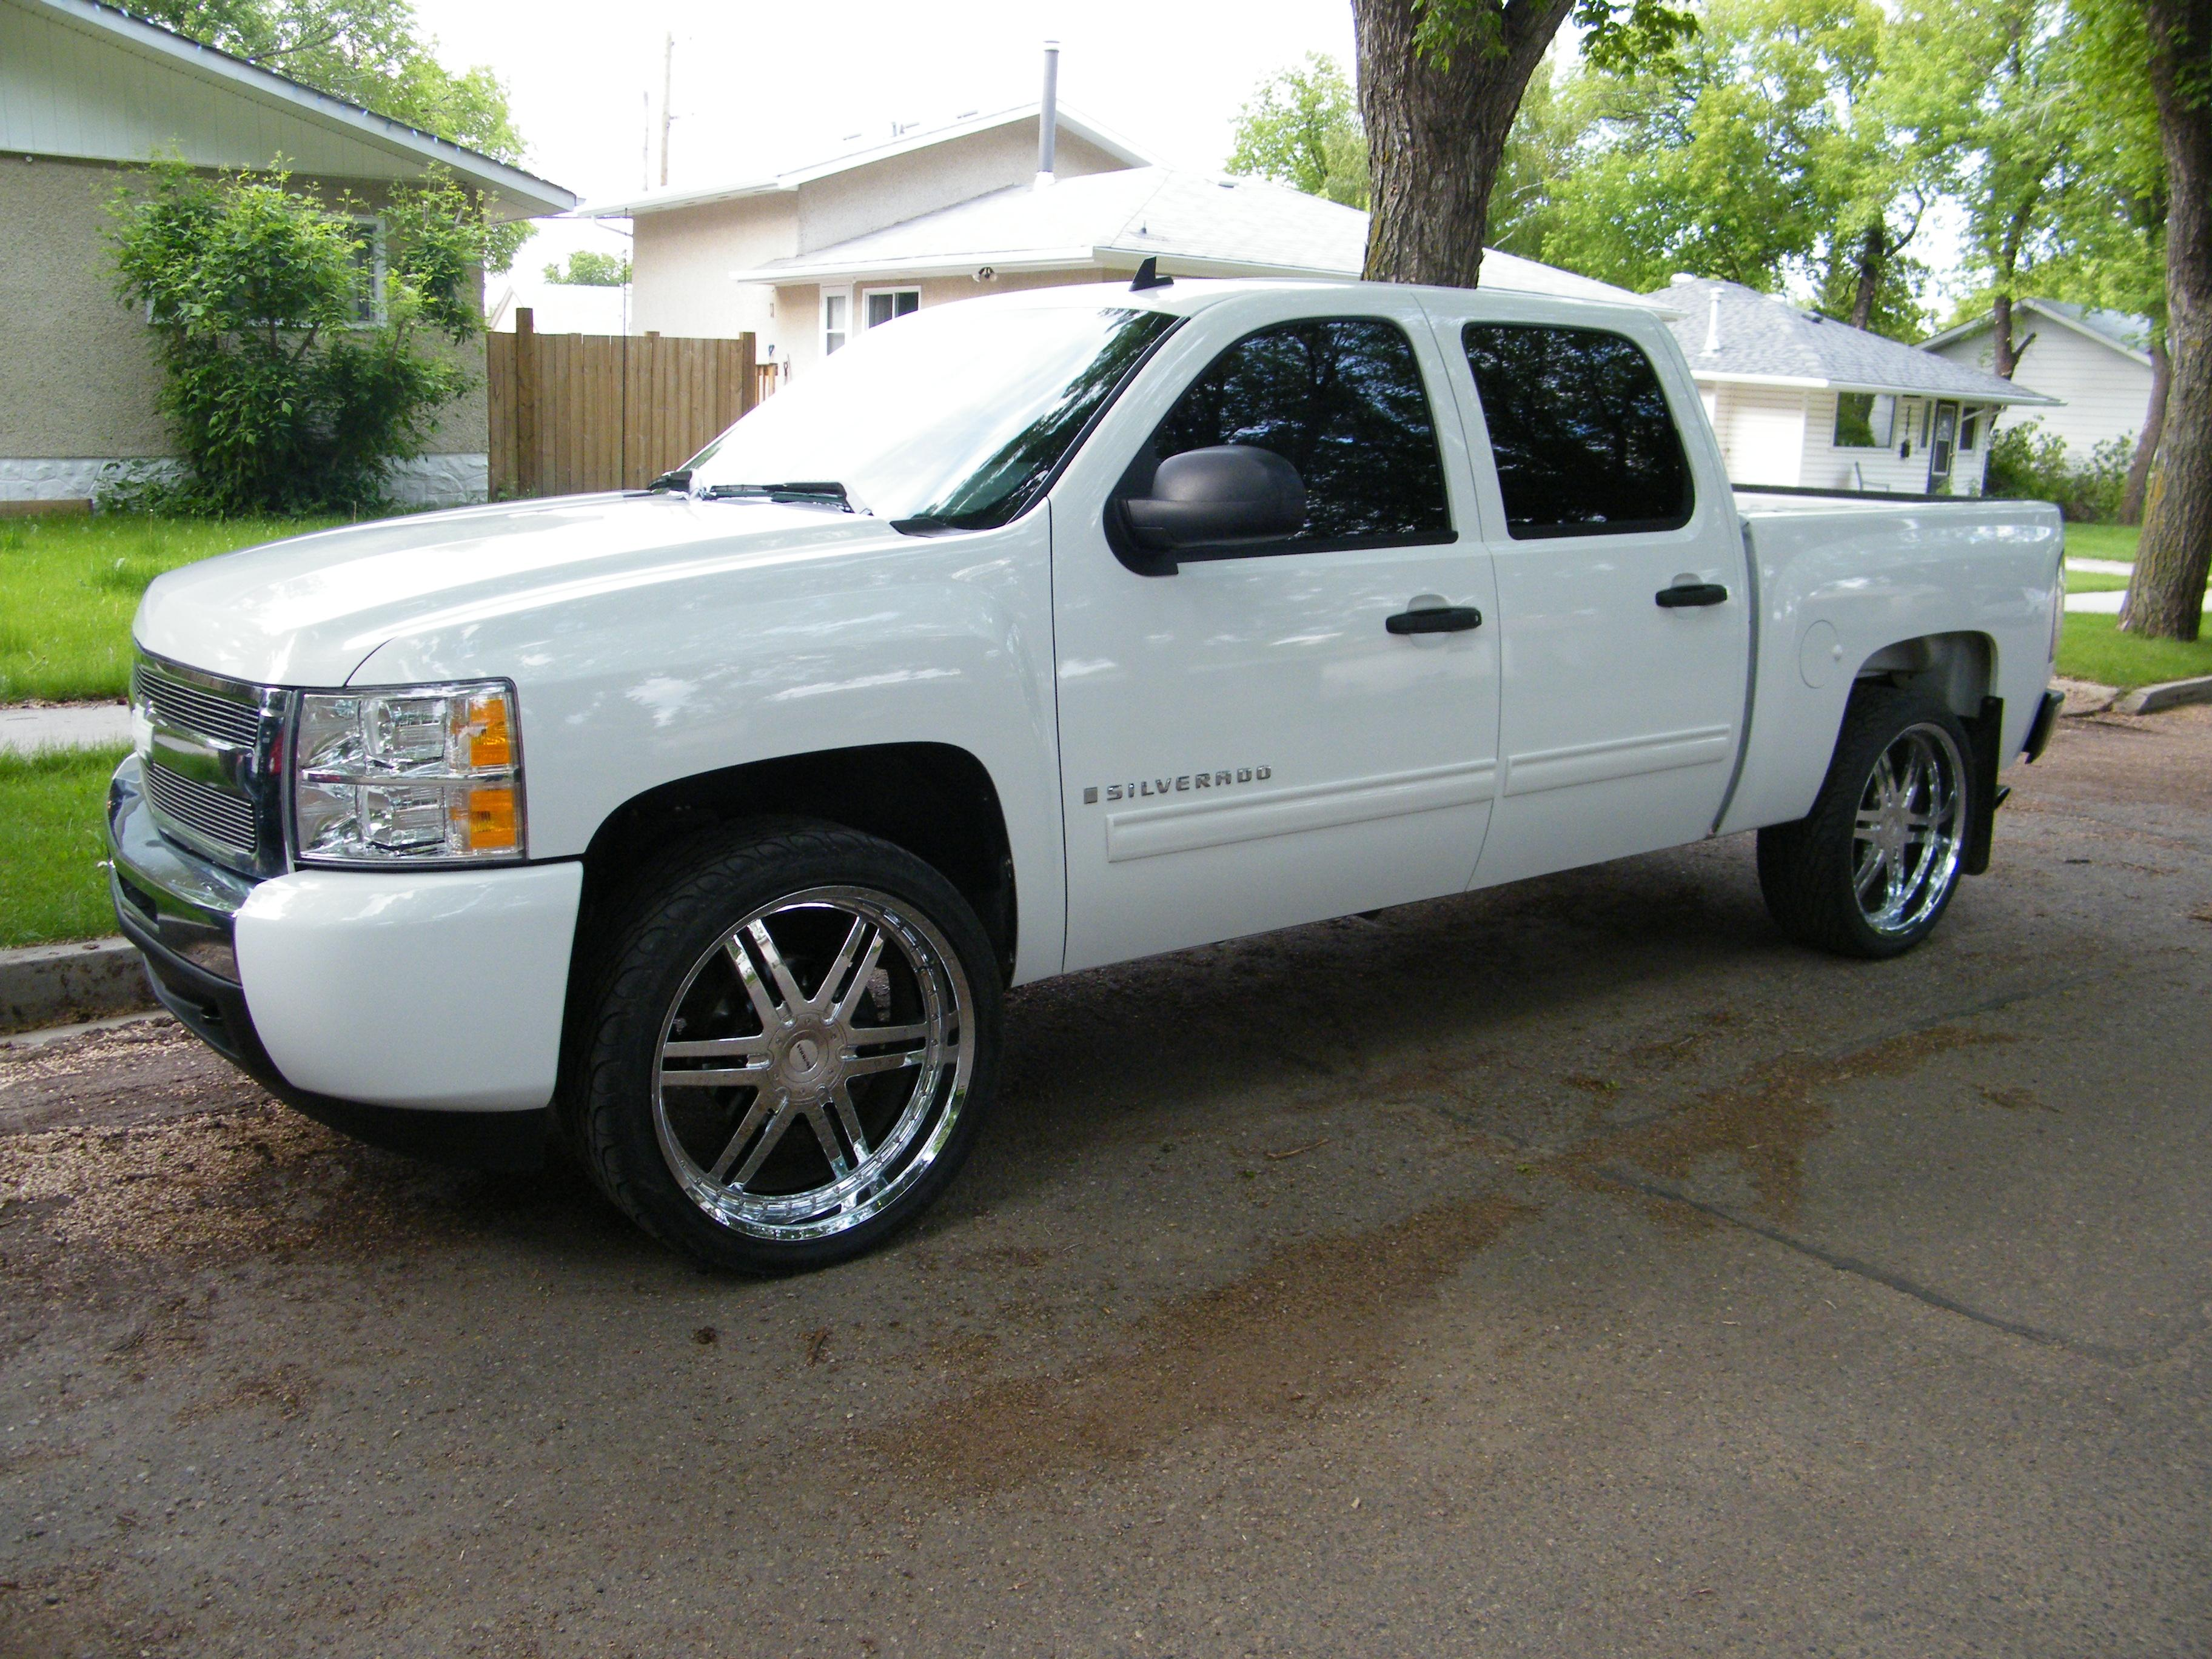 inc listings sales silverado northern chevrolet auto vehicle lights overview